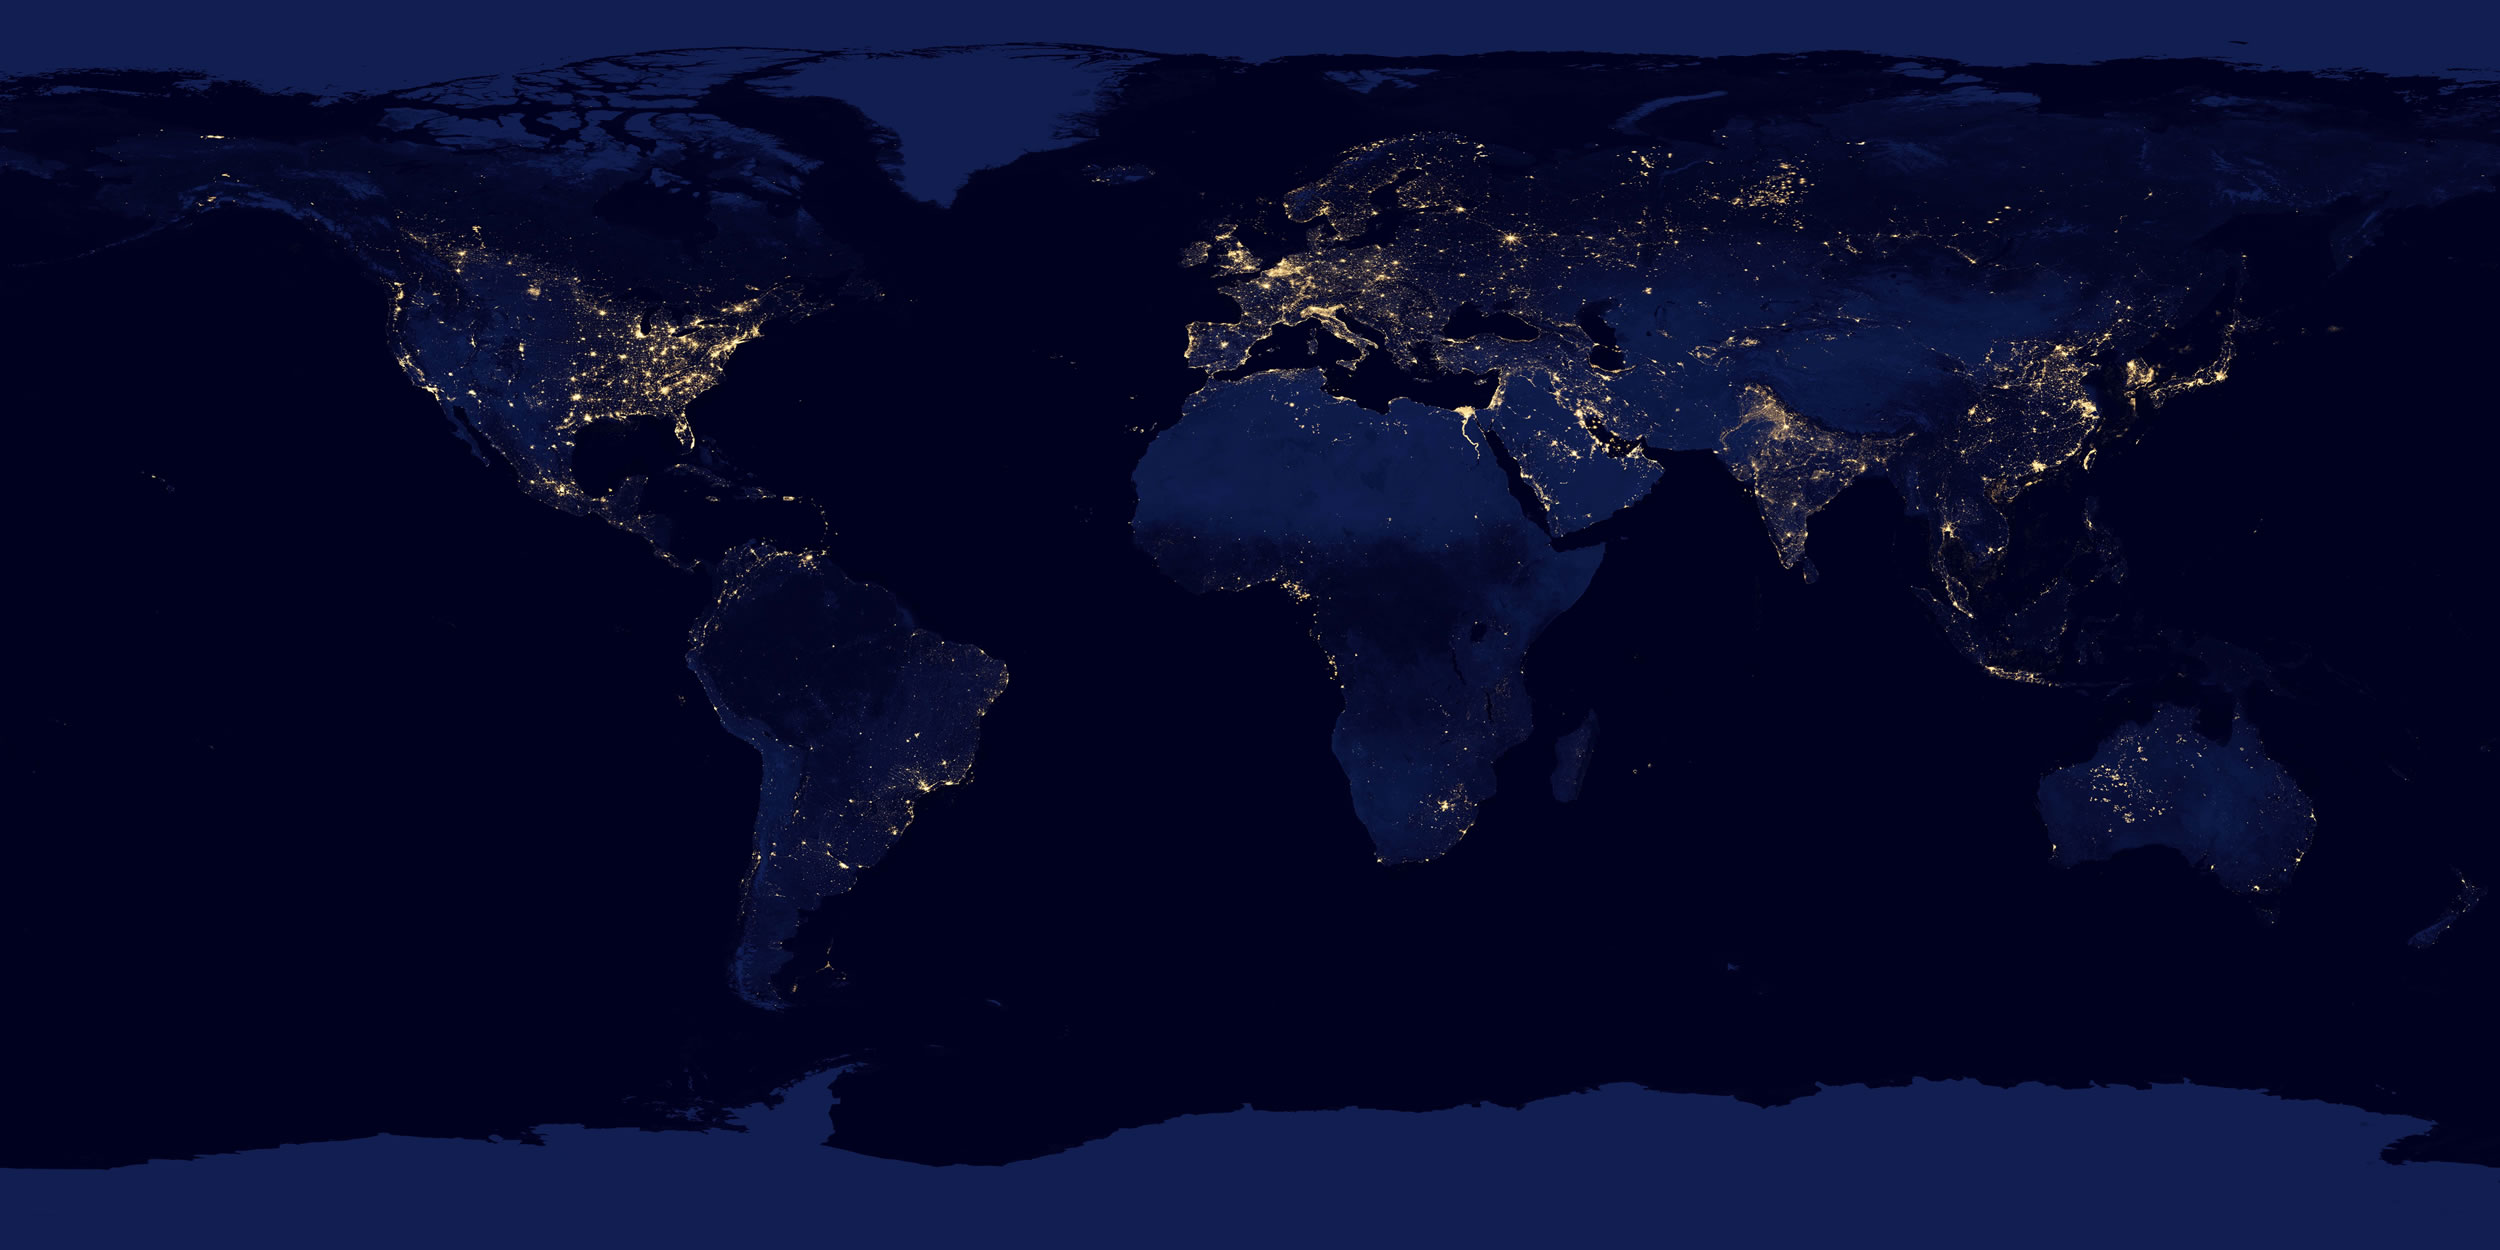 Night satellite photos earth us europe asia world click to view larger image gumiabroncs Image collections